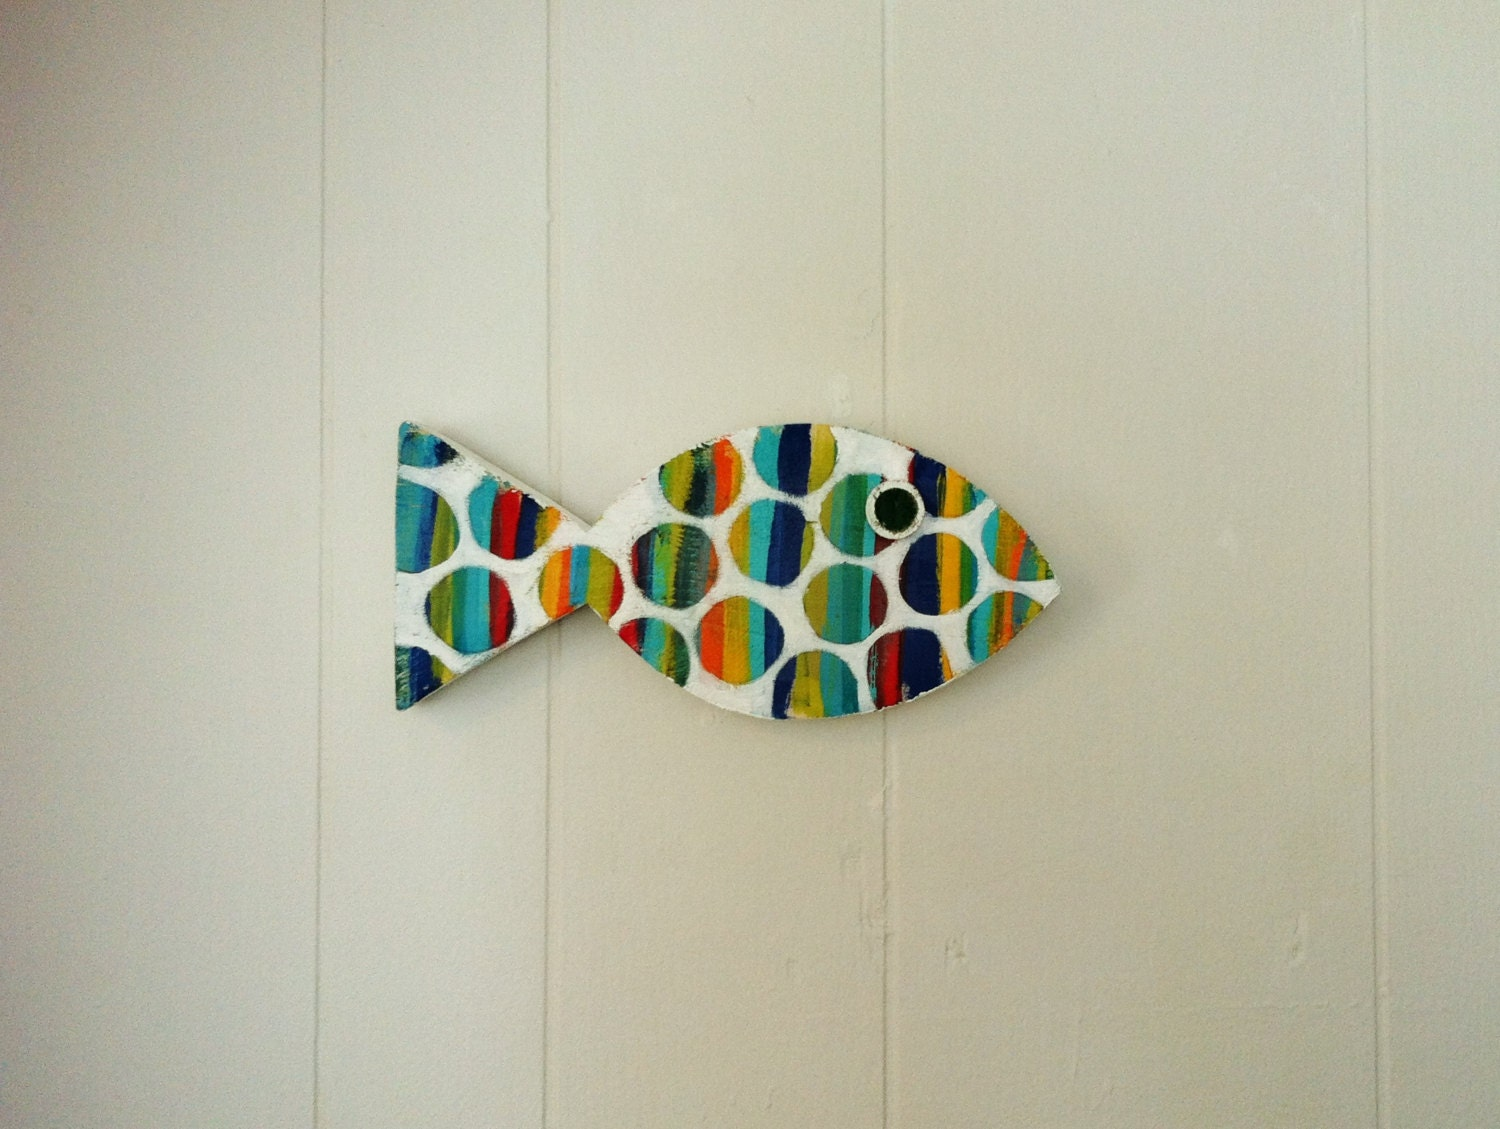 Wooden fish coastal beach art wall hanging decor by for Fish wall decor